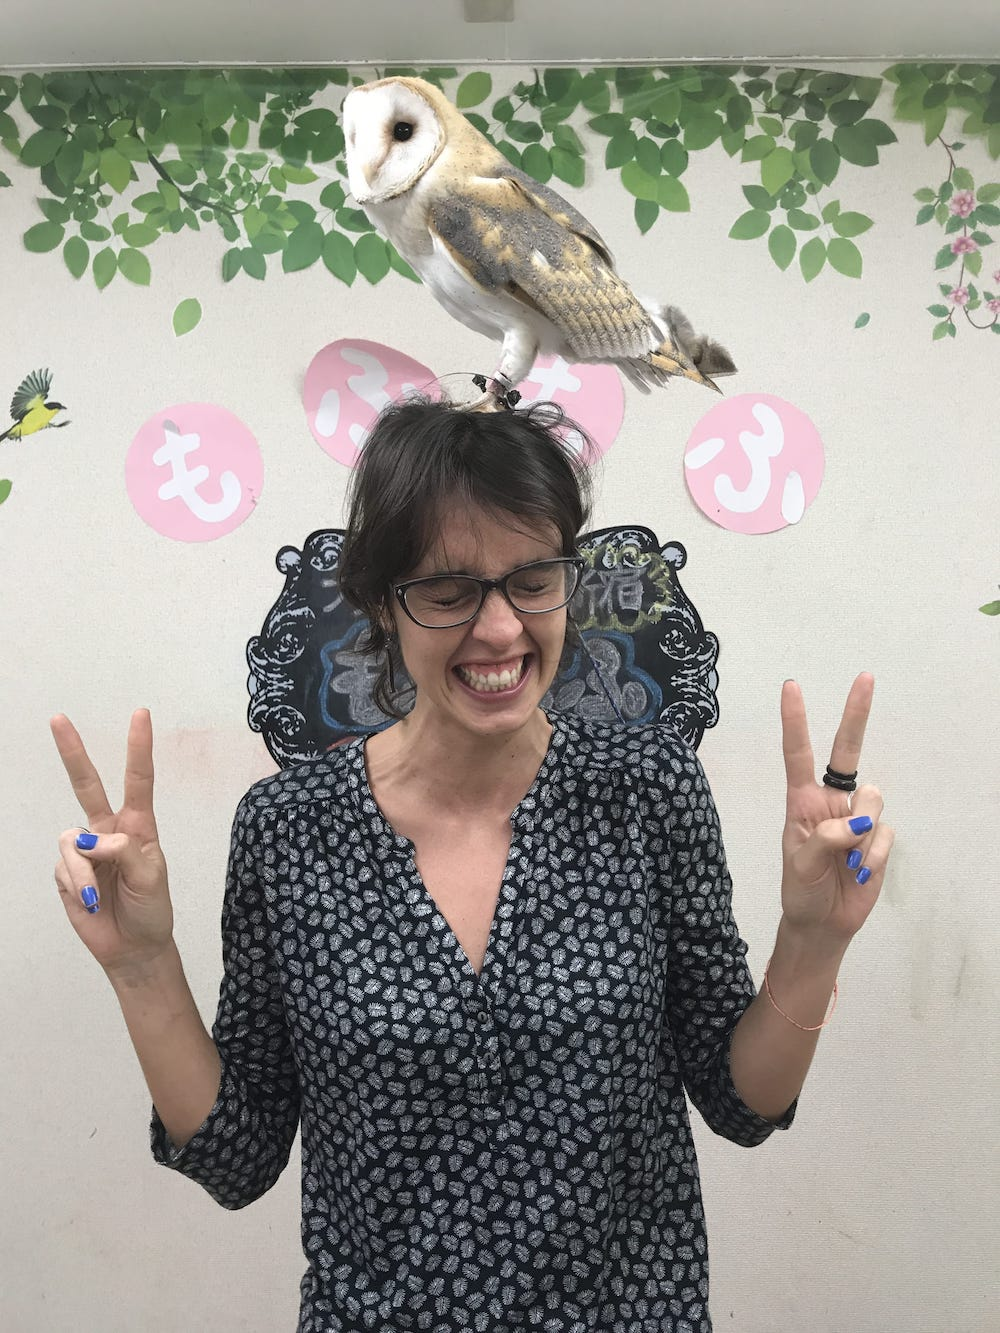 Woman poses with an owl on her head